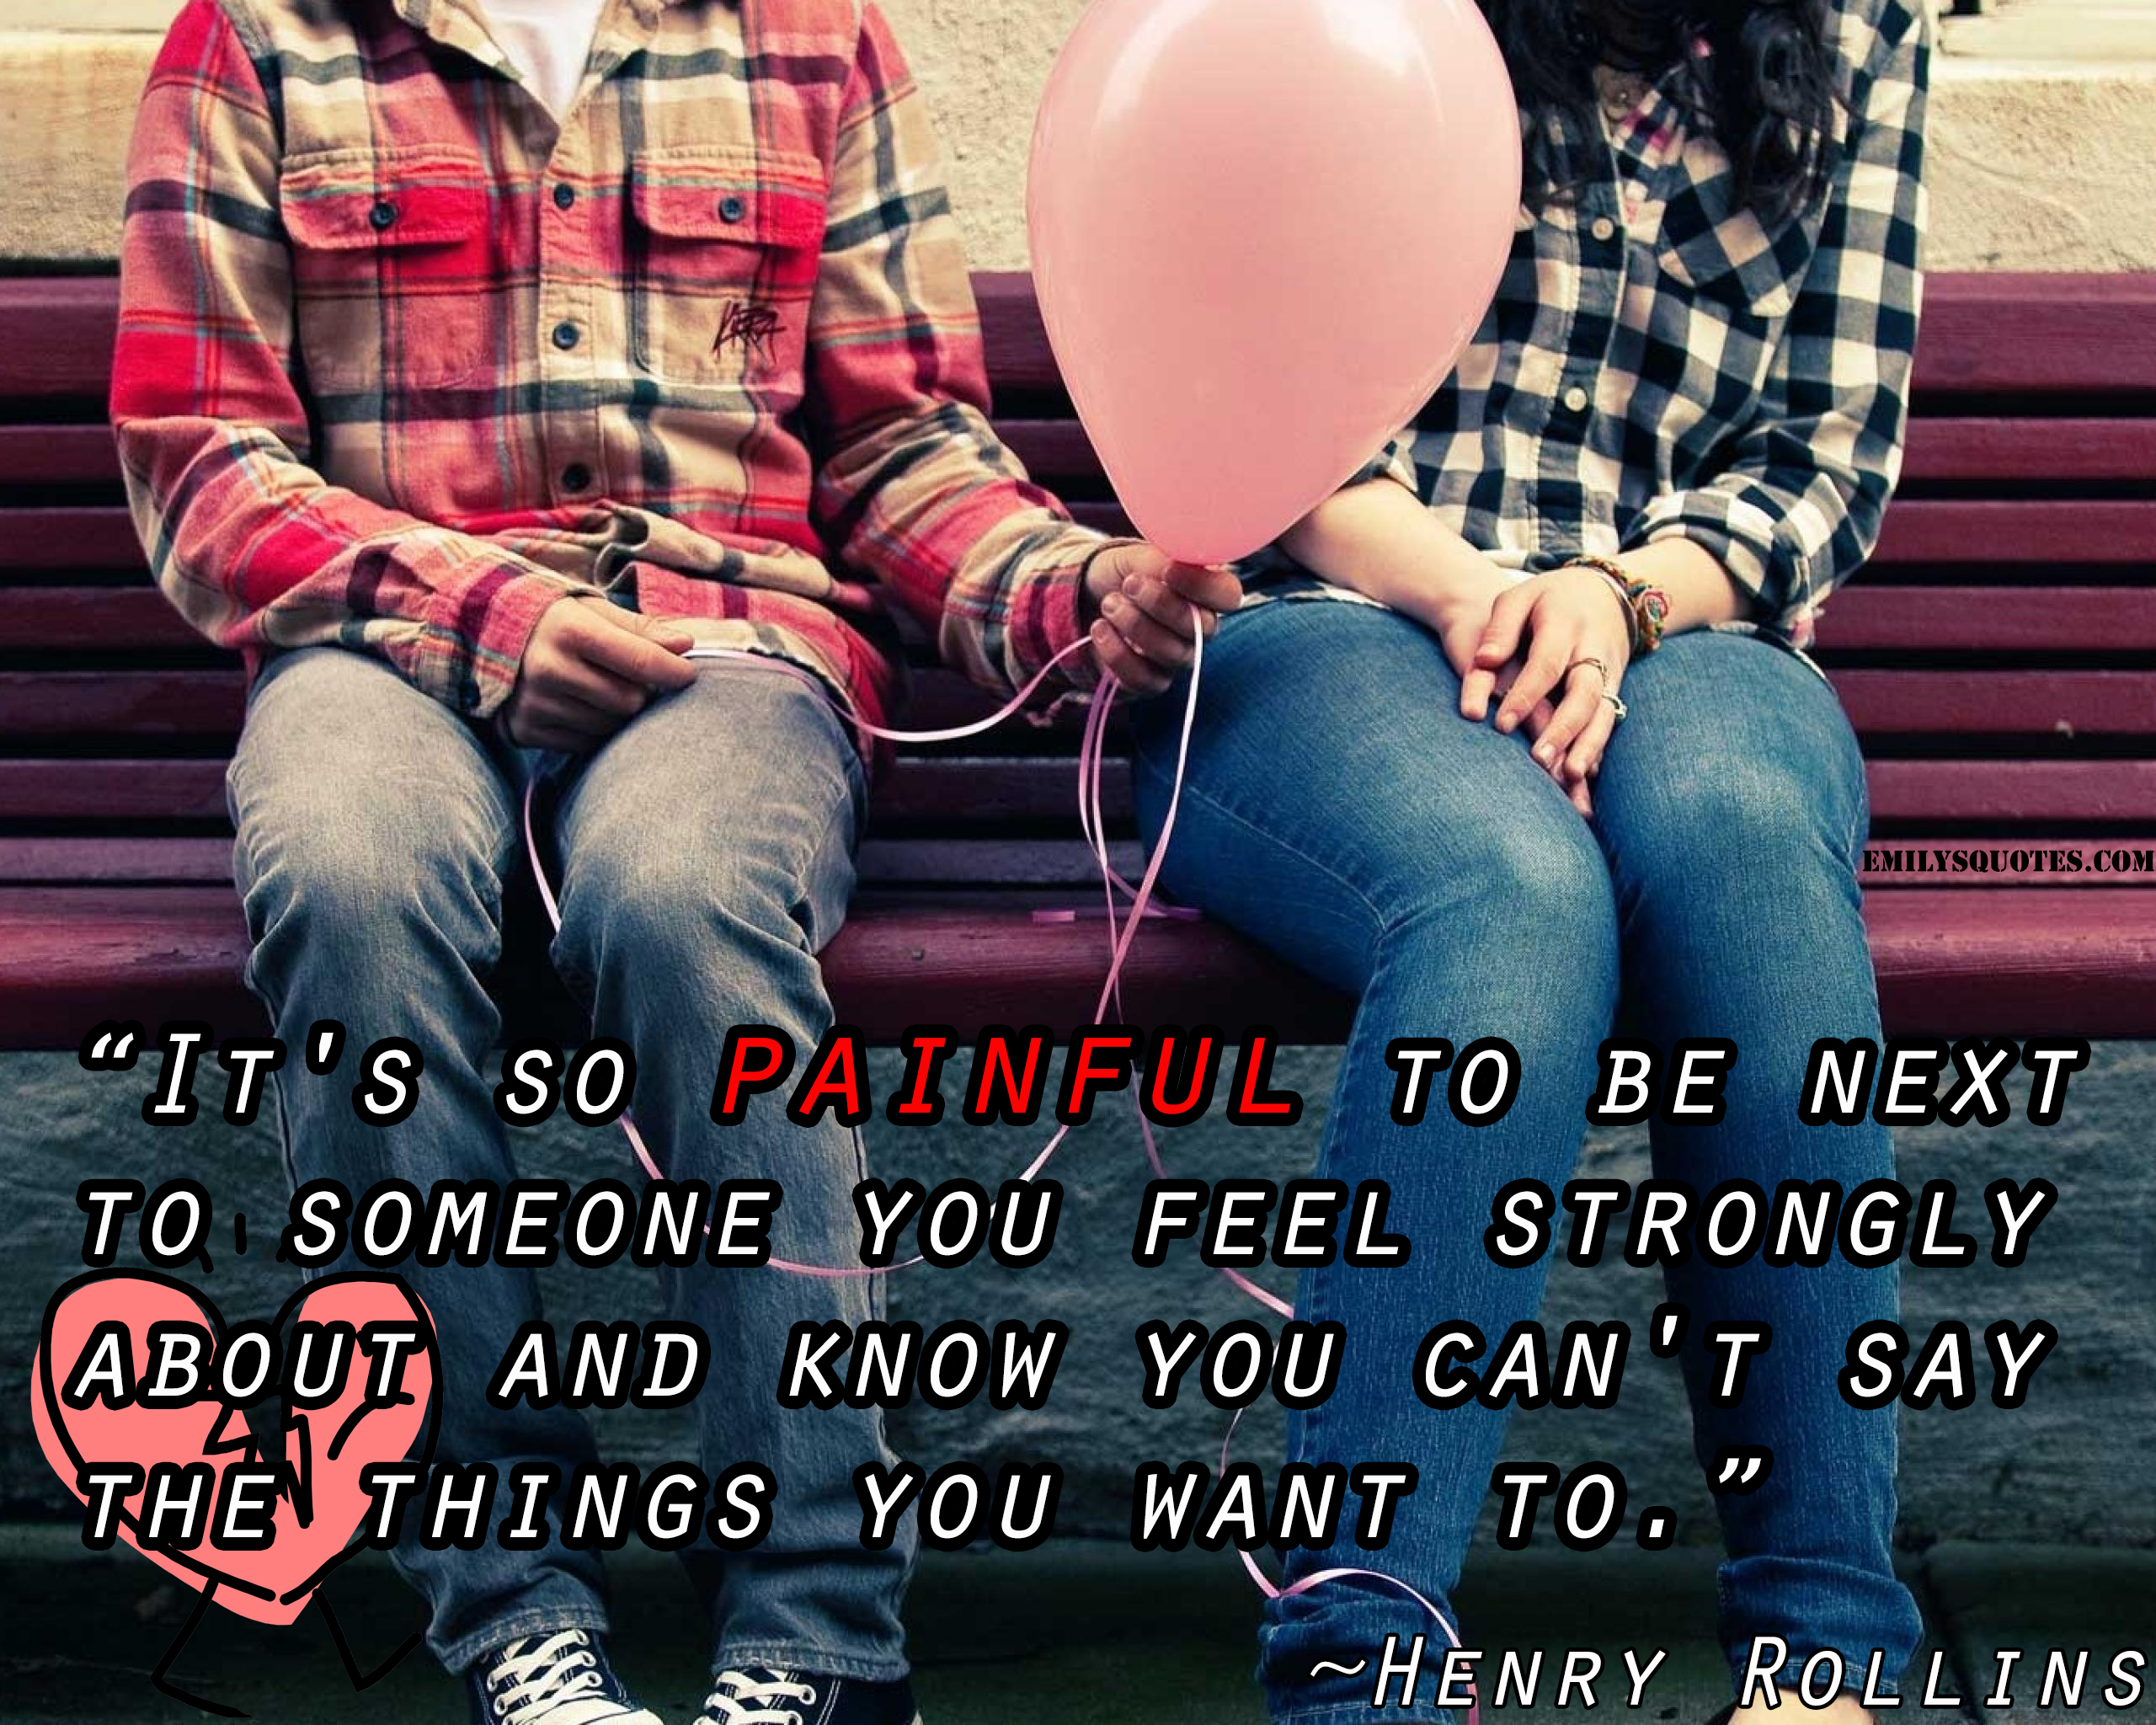 It's so painful to be next to someone you feel strongly